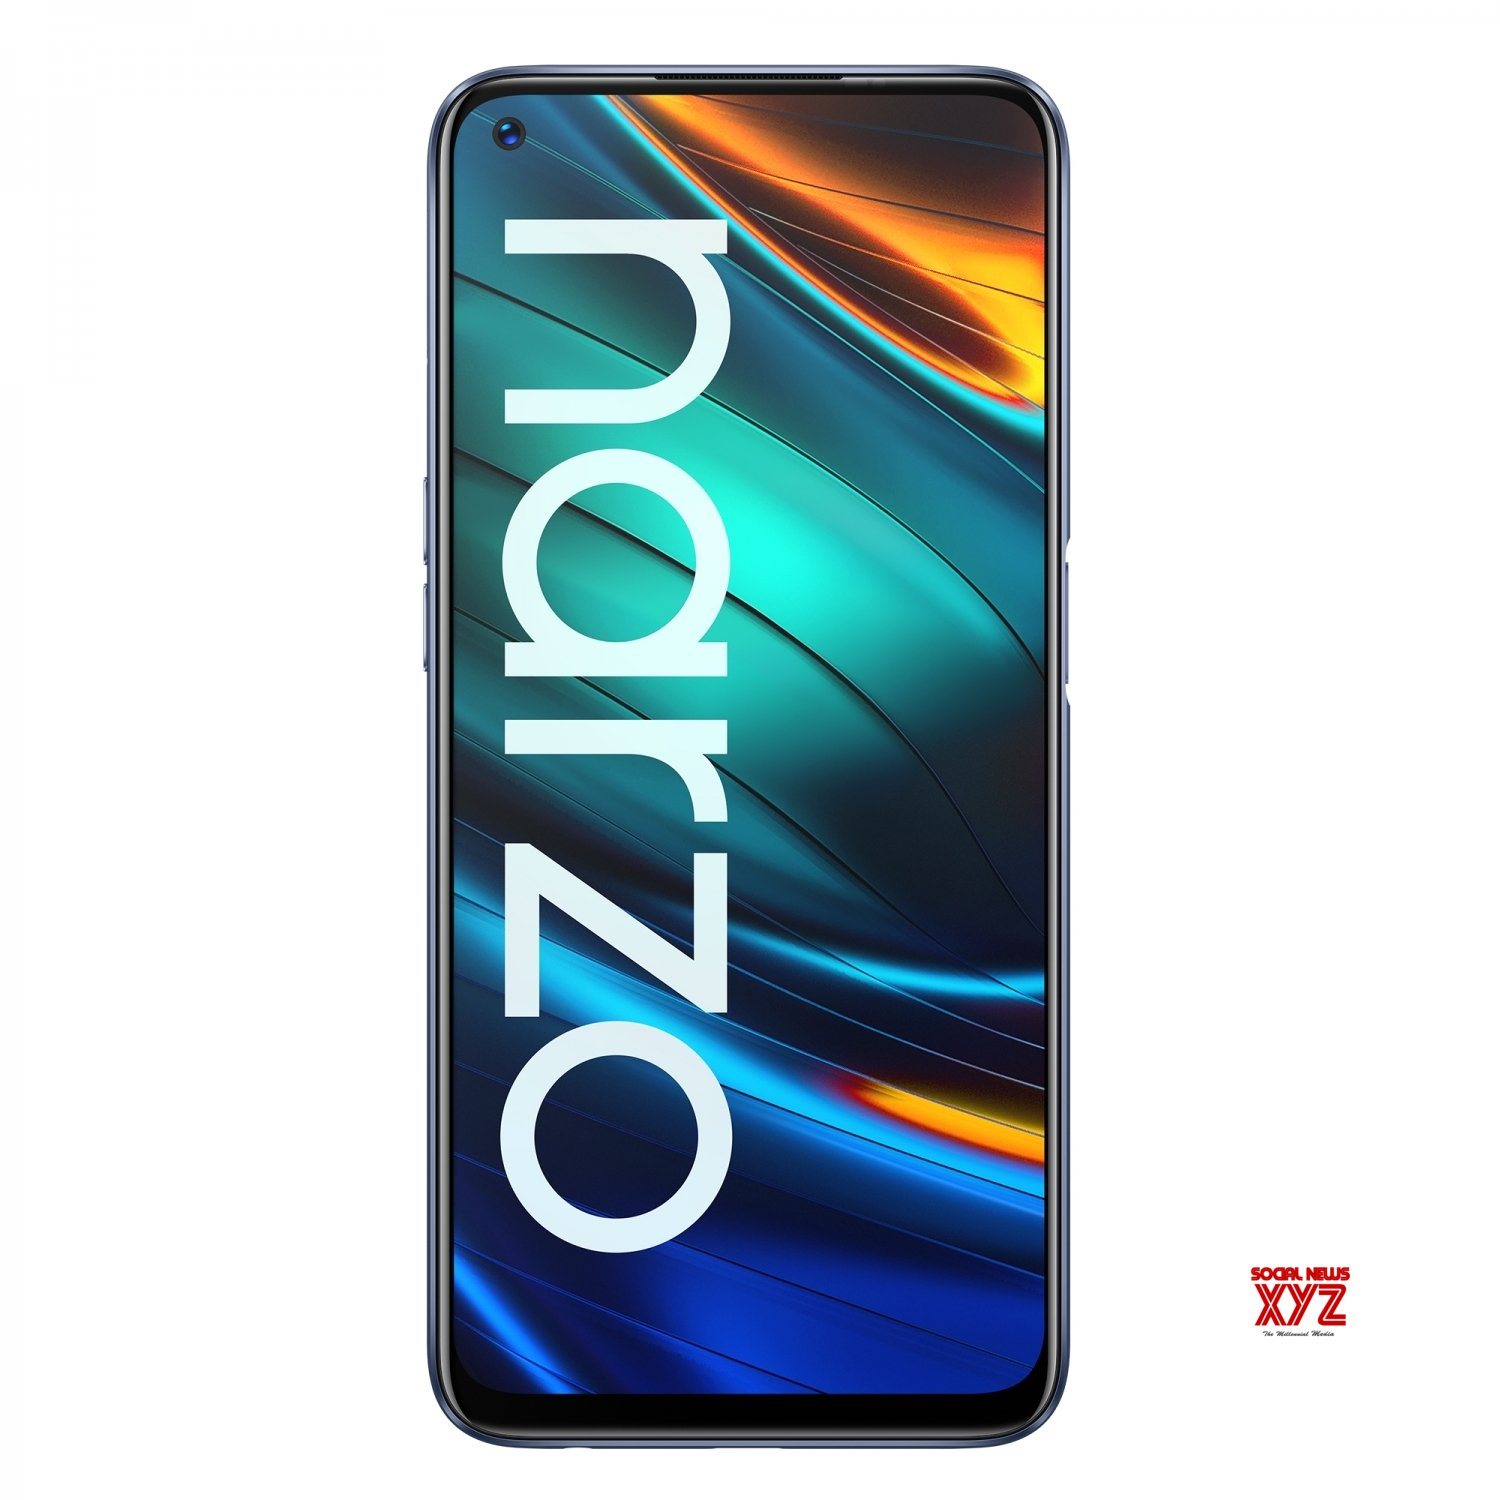 Realme UI 2.0 Set to Land on 20 Smartphones, Devices Listed